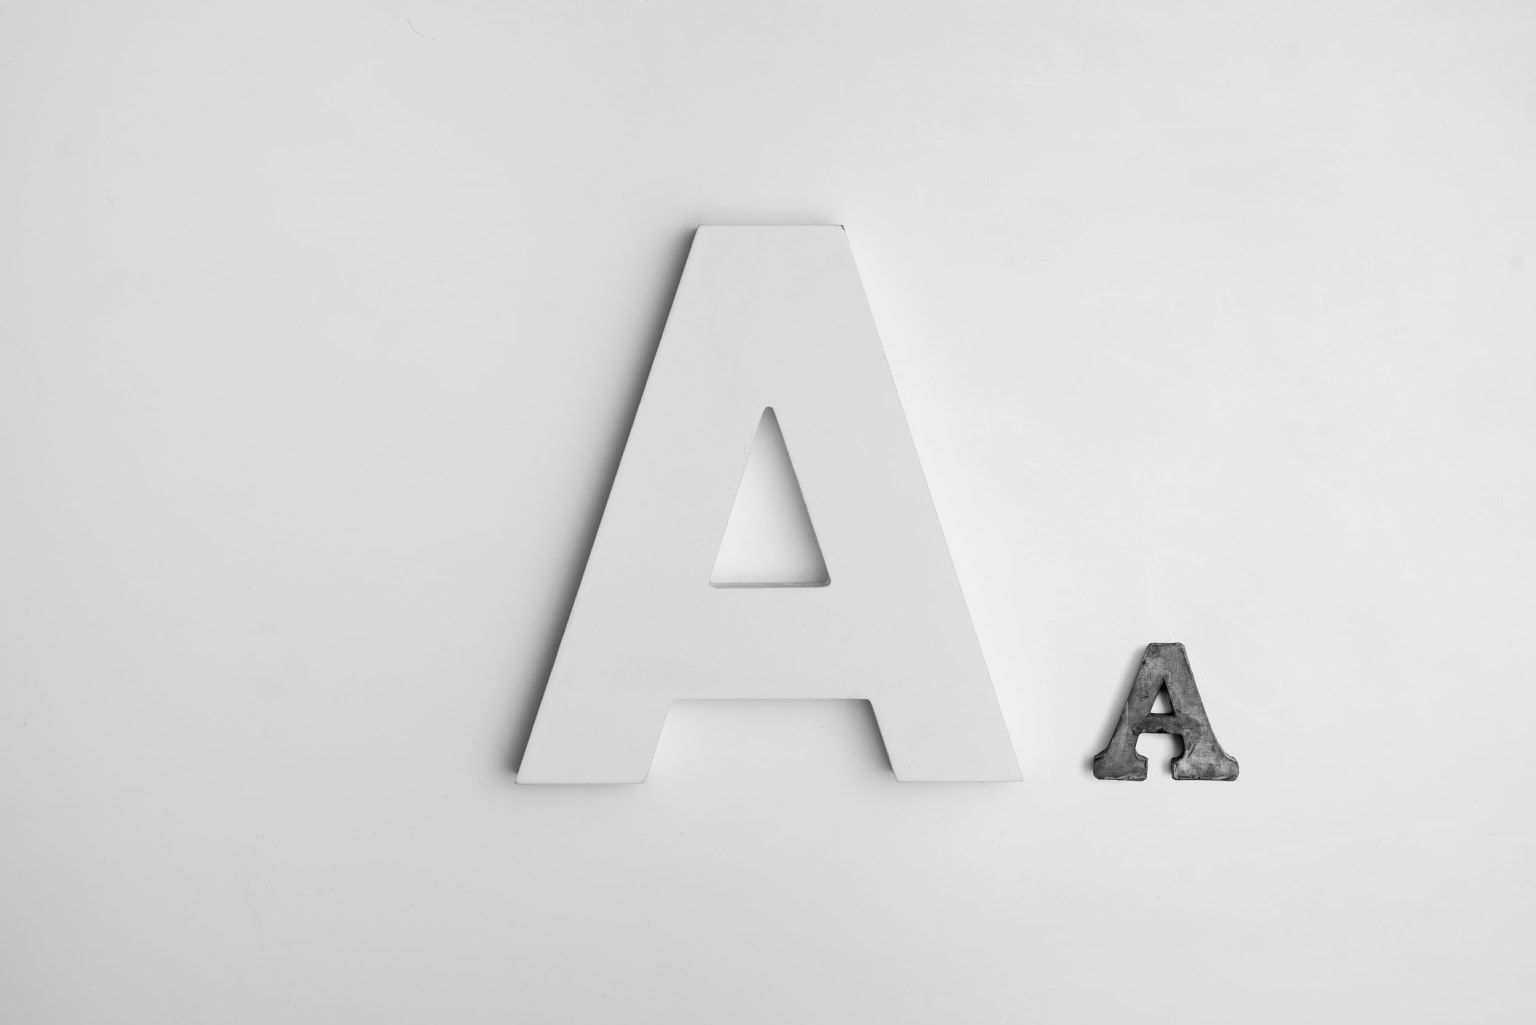 Font size matters - why you should design with a larger font